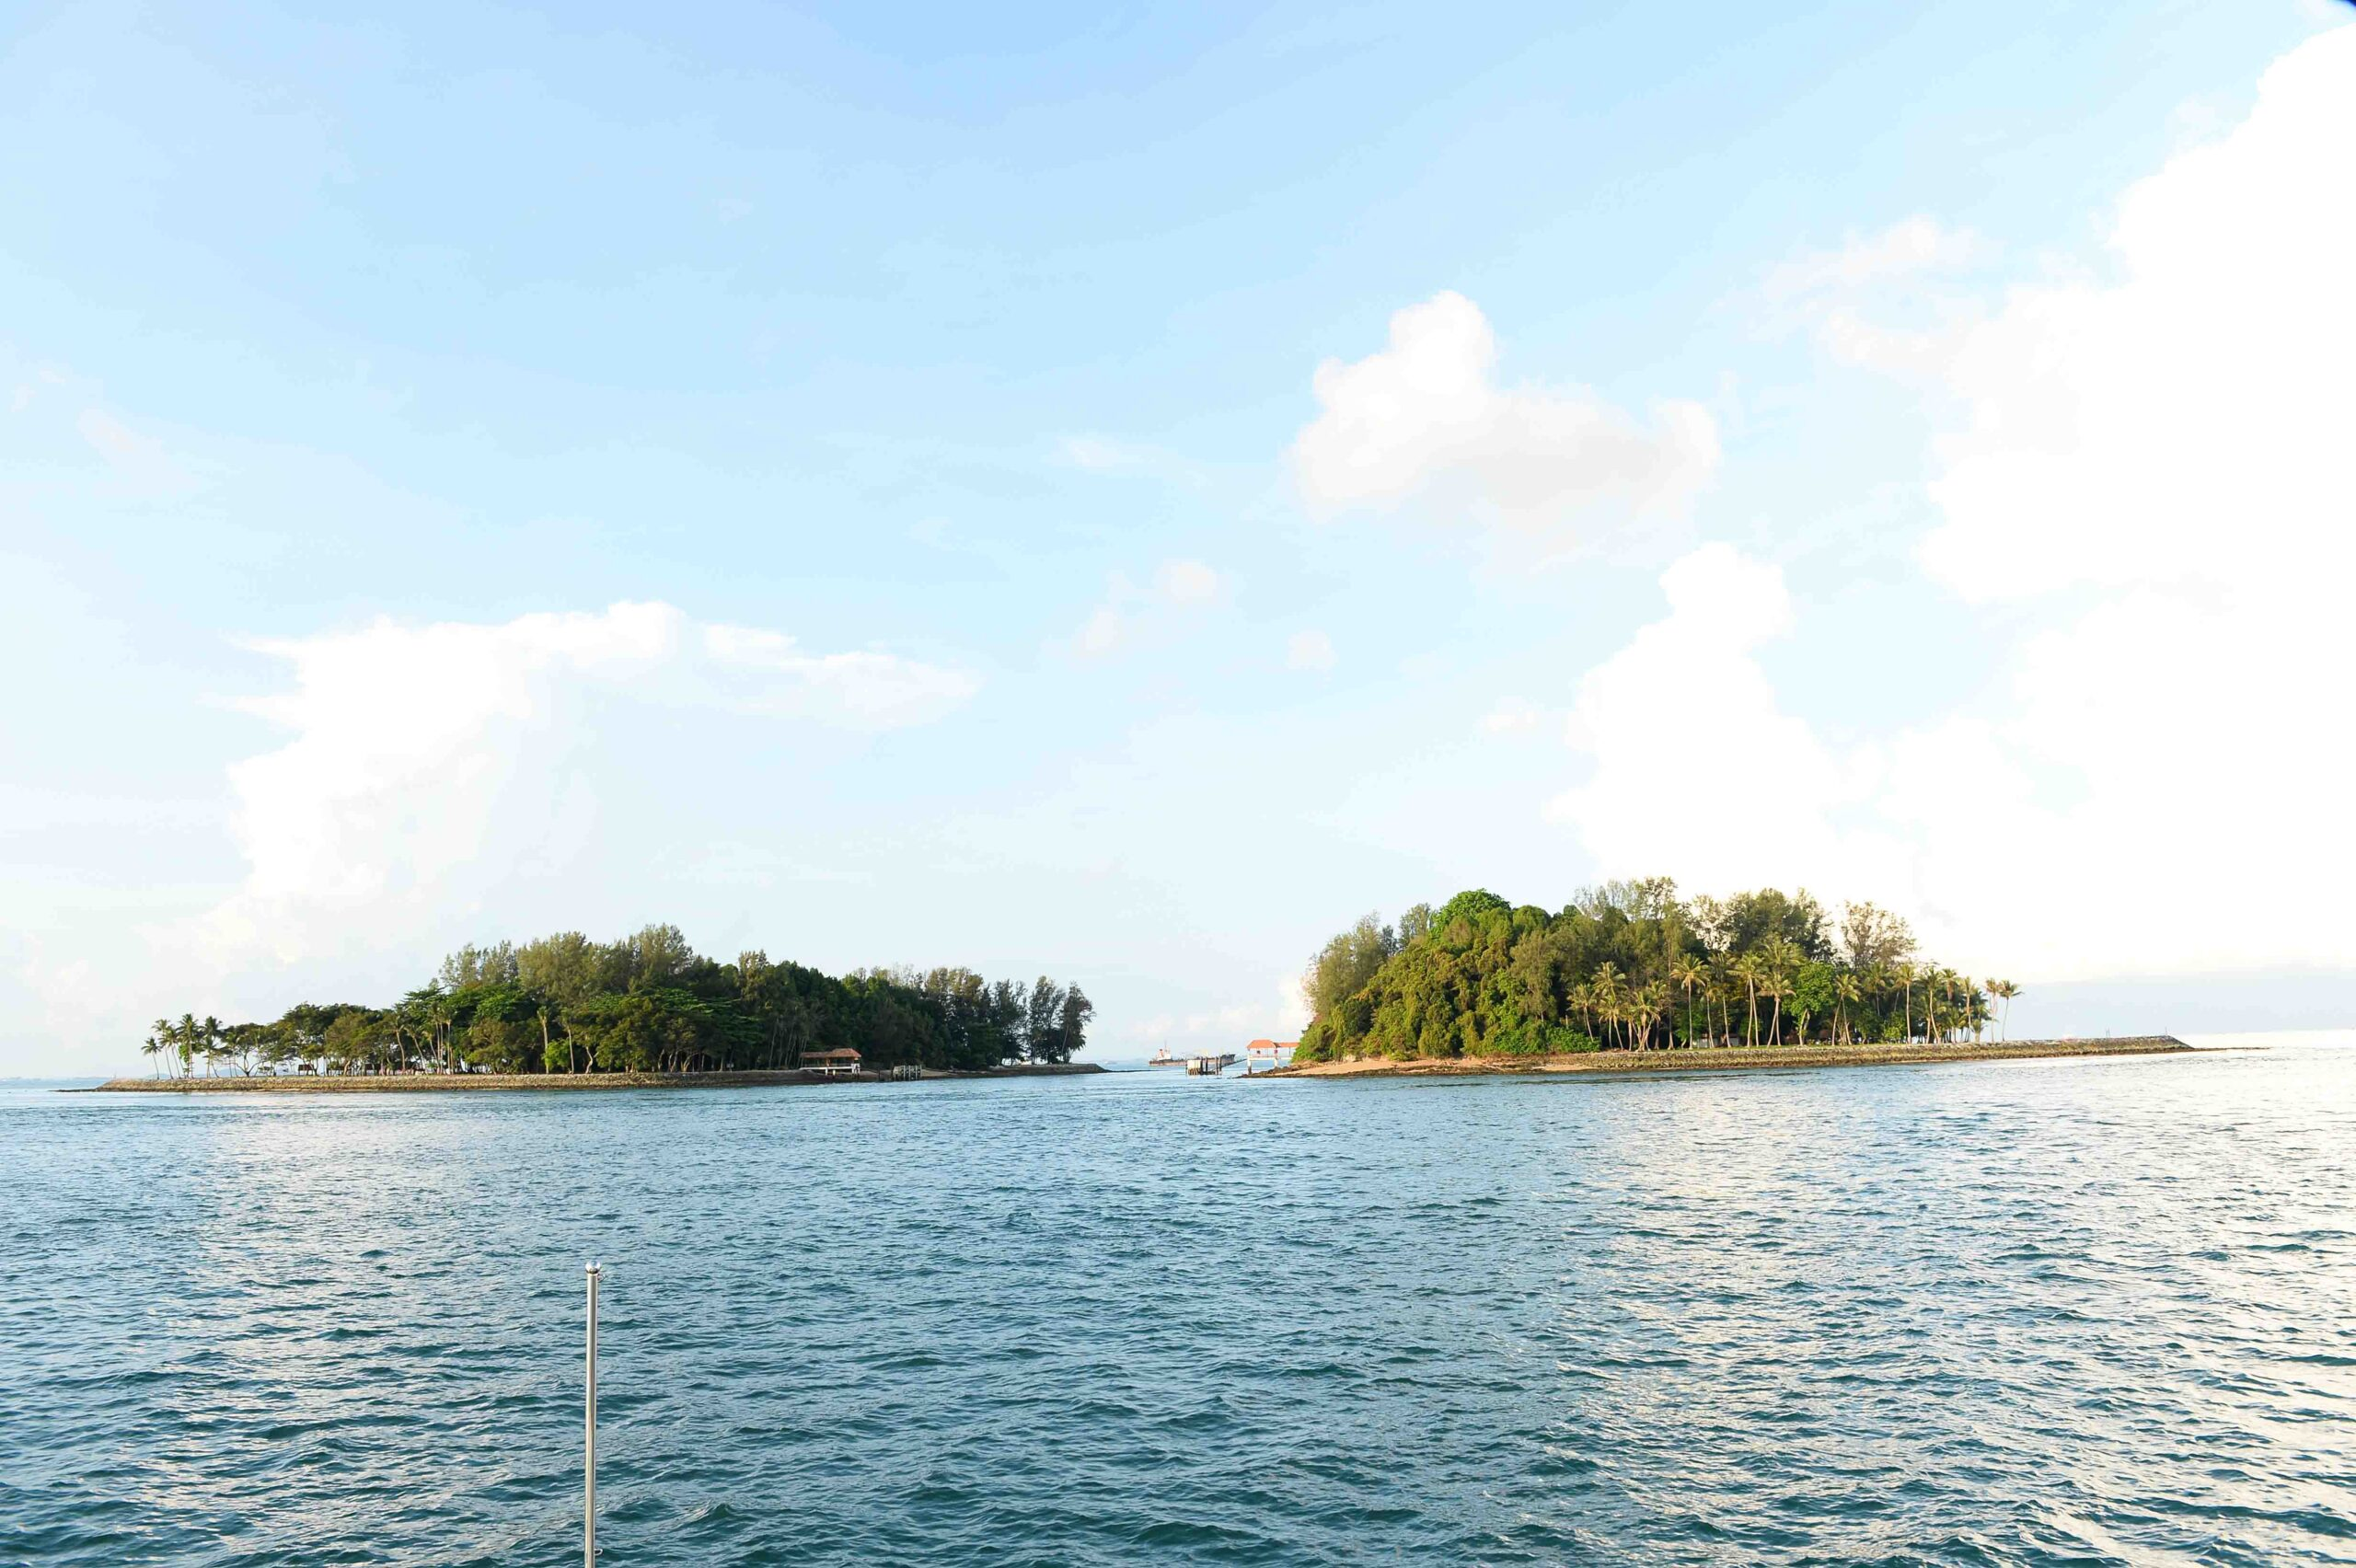 View of Sisters Island Marine Park from a boat